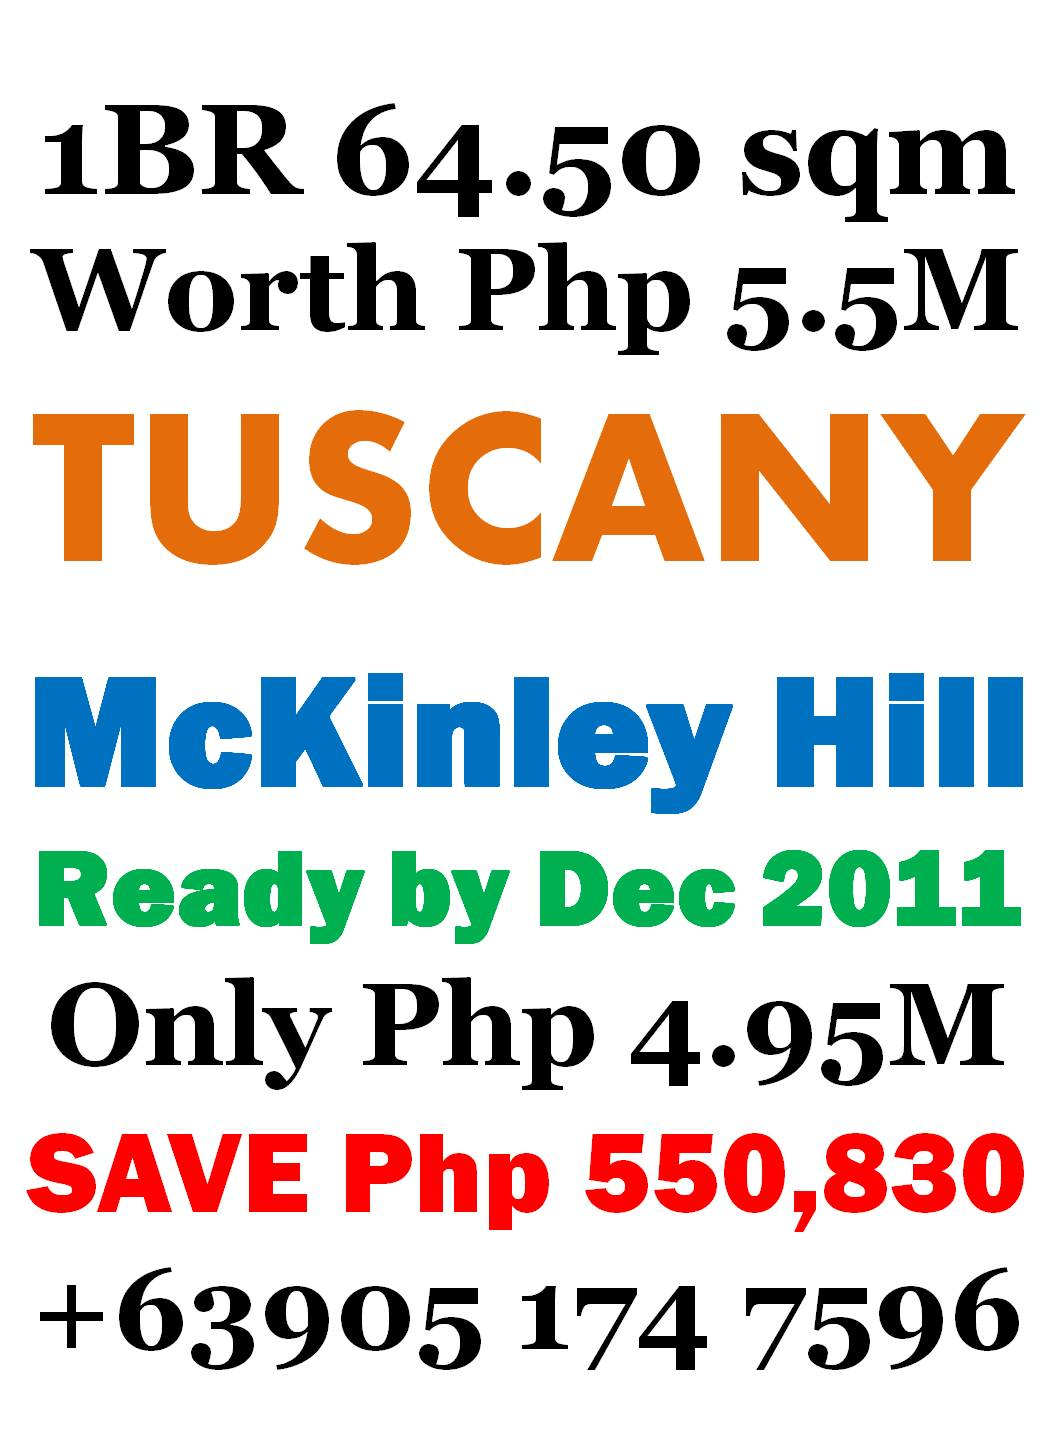 1 BedRoom Loft 64.5sqm - Save Php 550,830 - Tuscany McKinley Hill